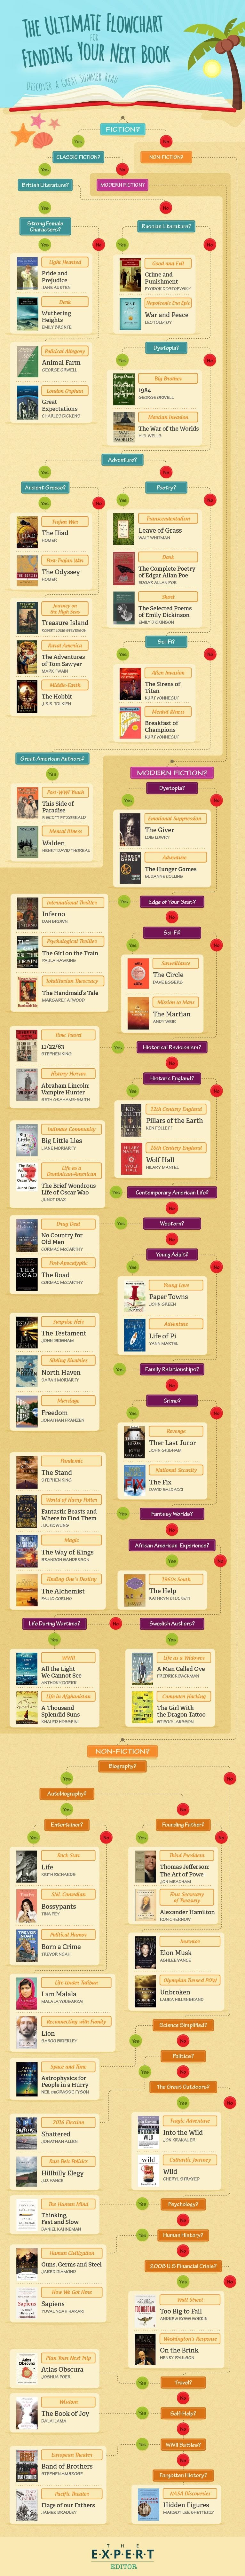 The Ultimate Flowchart for Finding Your Next Book - #infographic